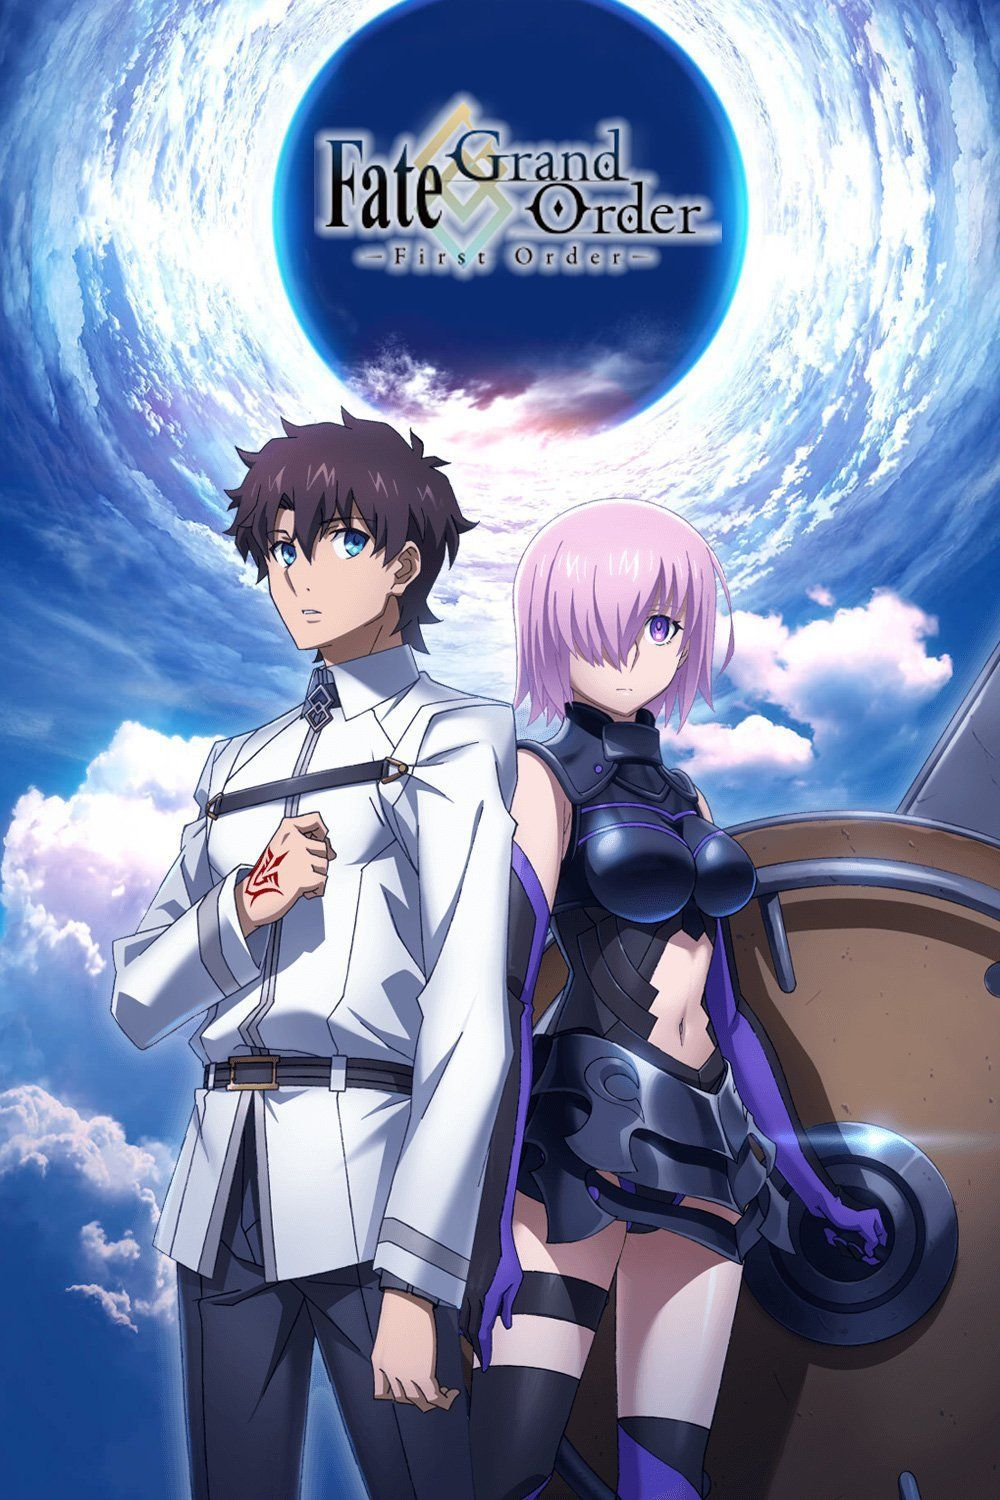 Fate/Grand Order First Order (Special Anime, Anime